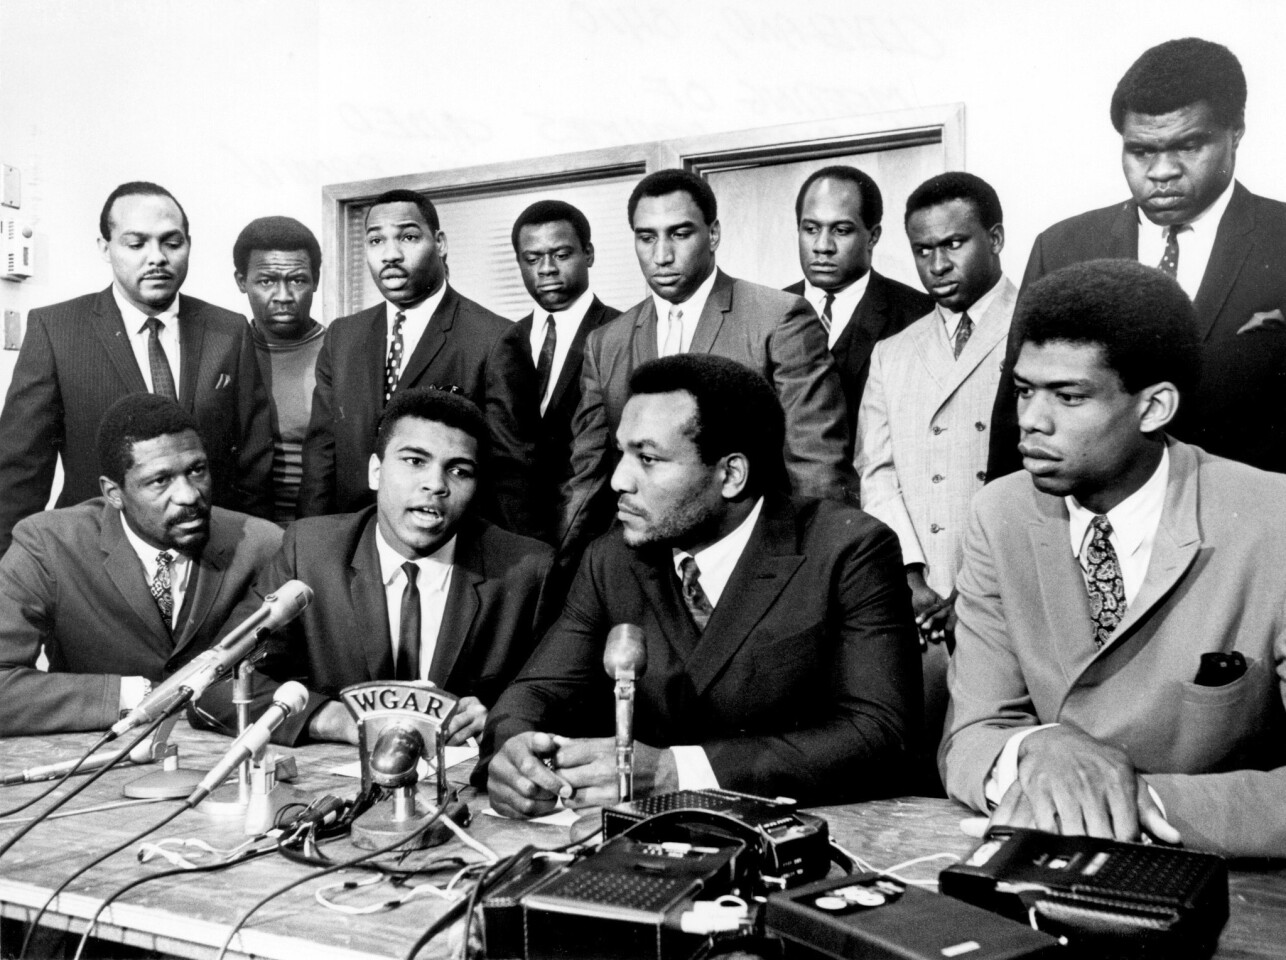 Former Cleveland Browns Hall of Fame running back Jim Brown presides over a meeting of top African American athletes in 1967.